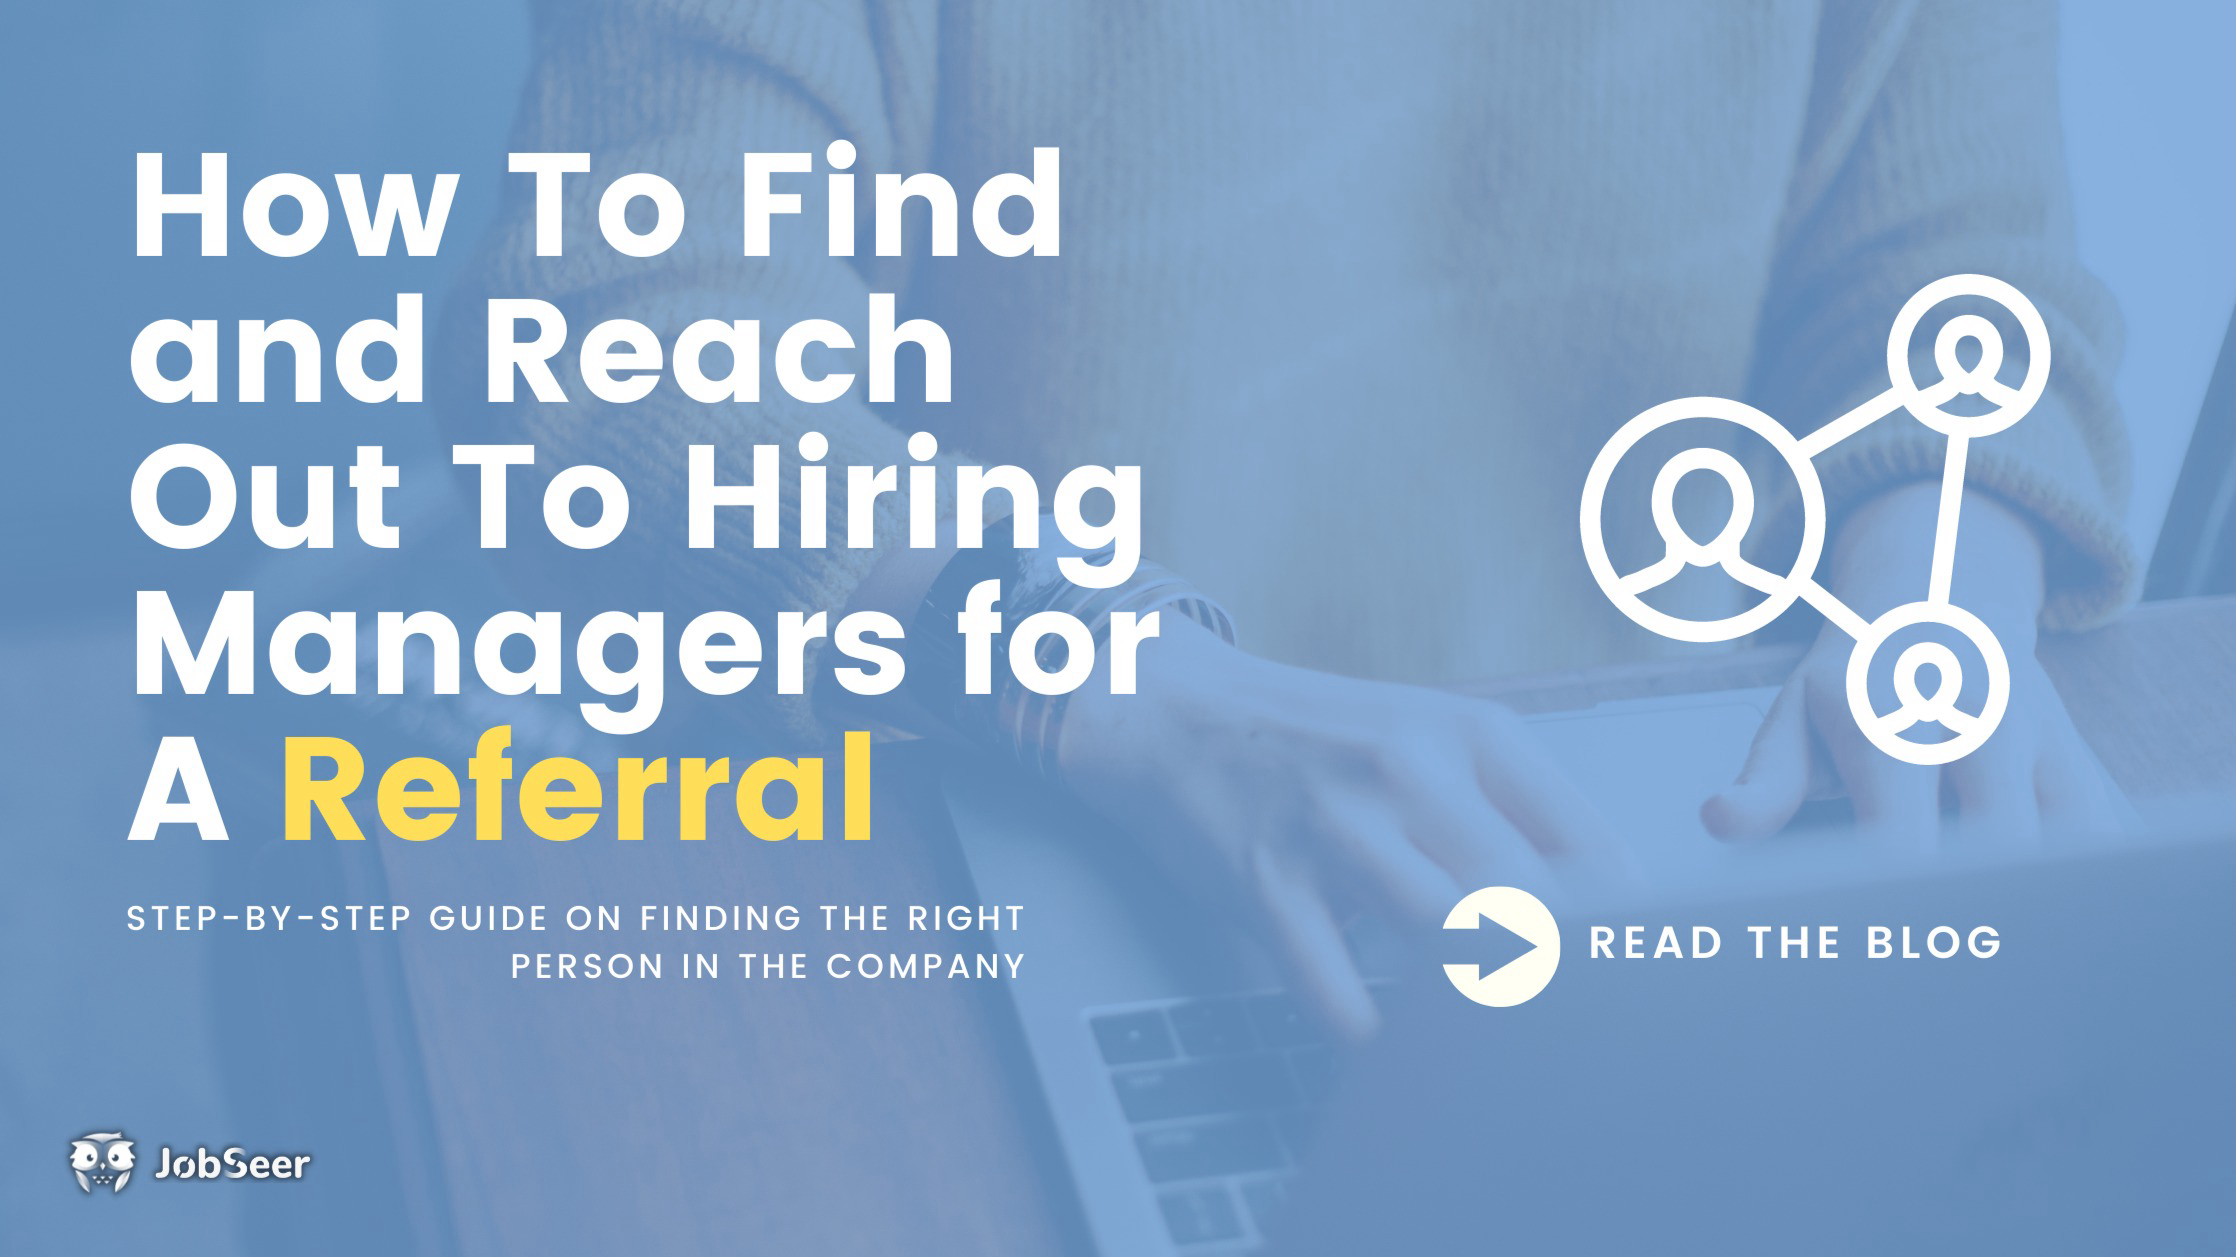 how-to-find-and-reach-out-to-hiring-managers-for-a-referral